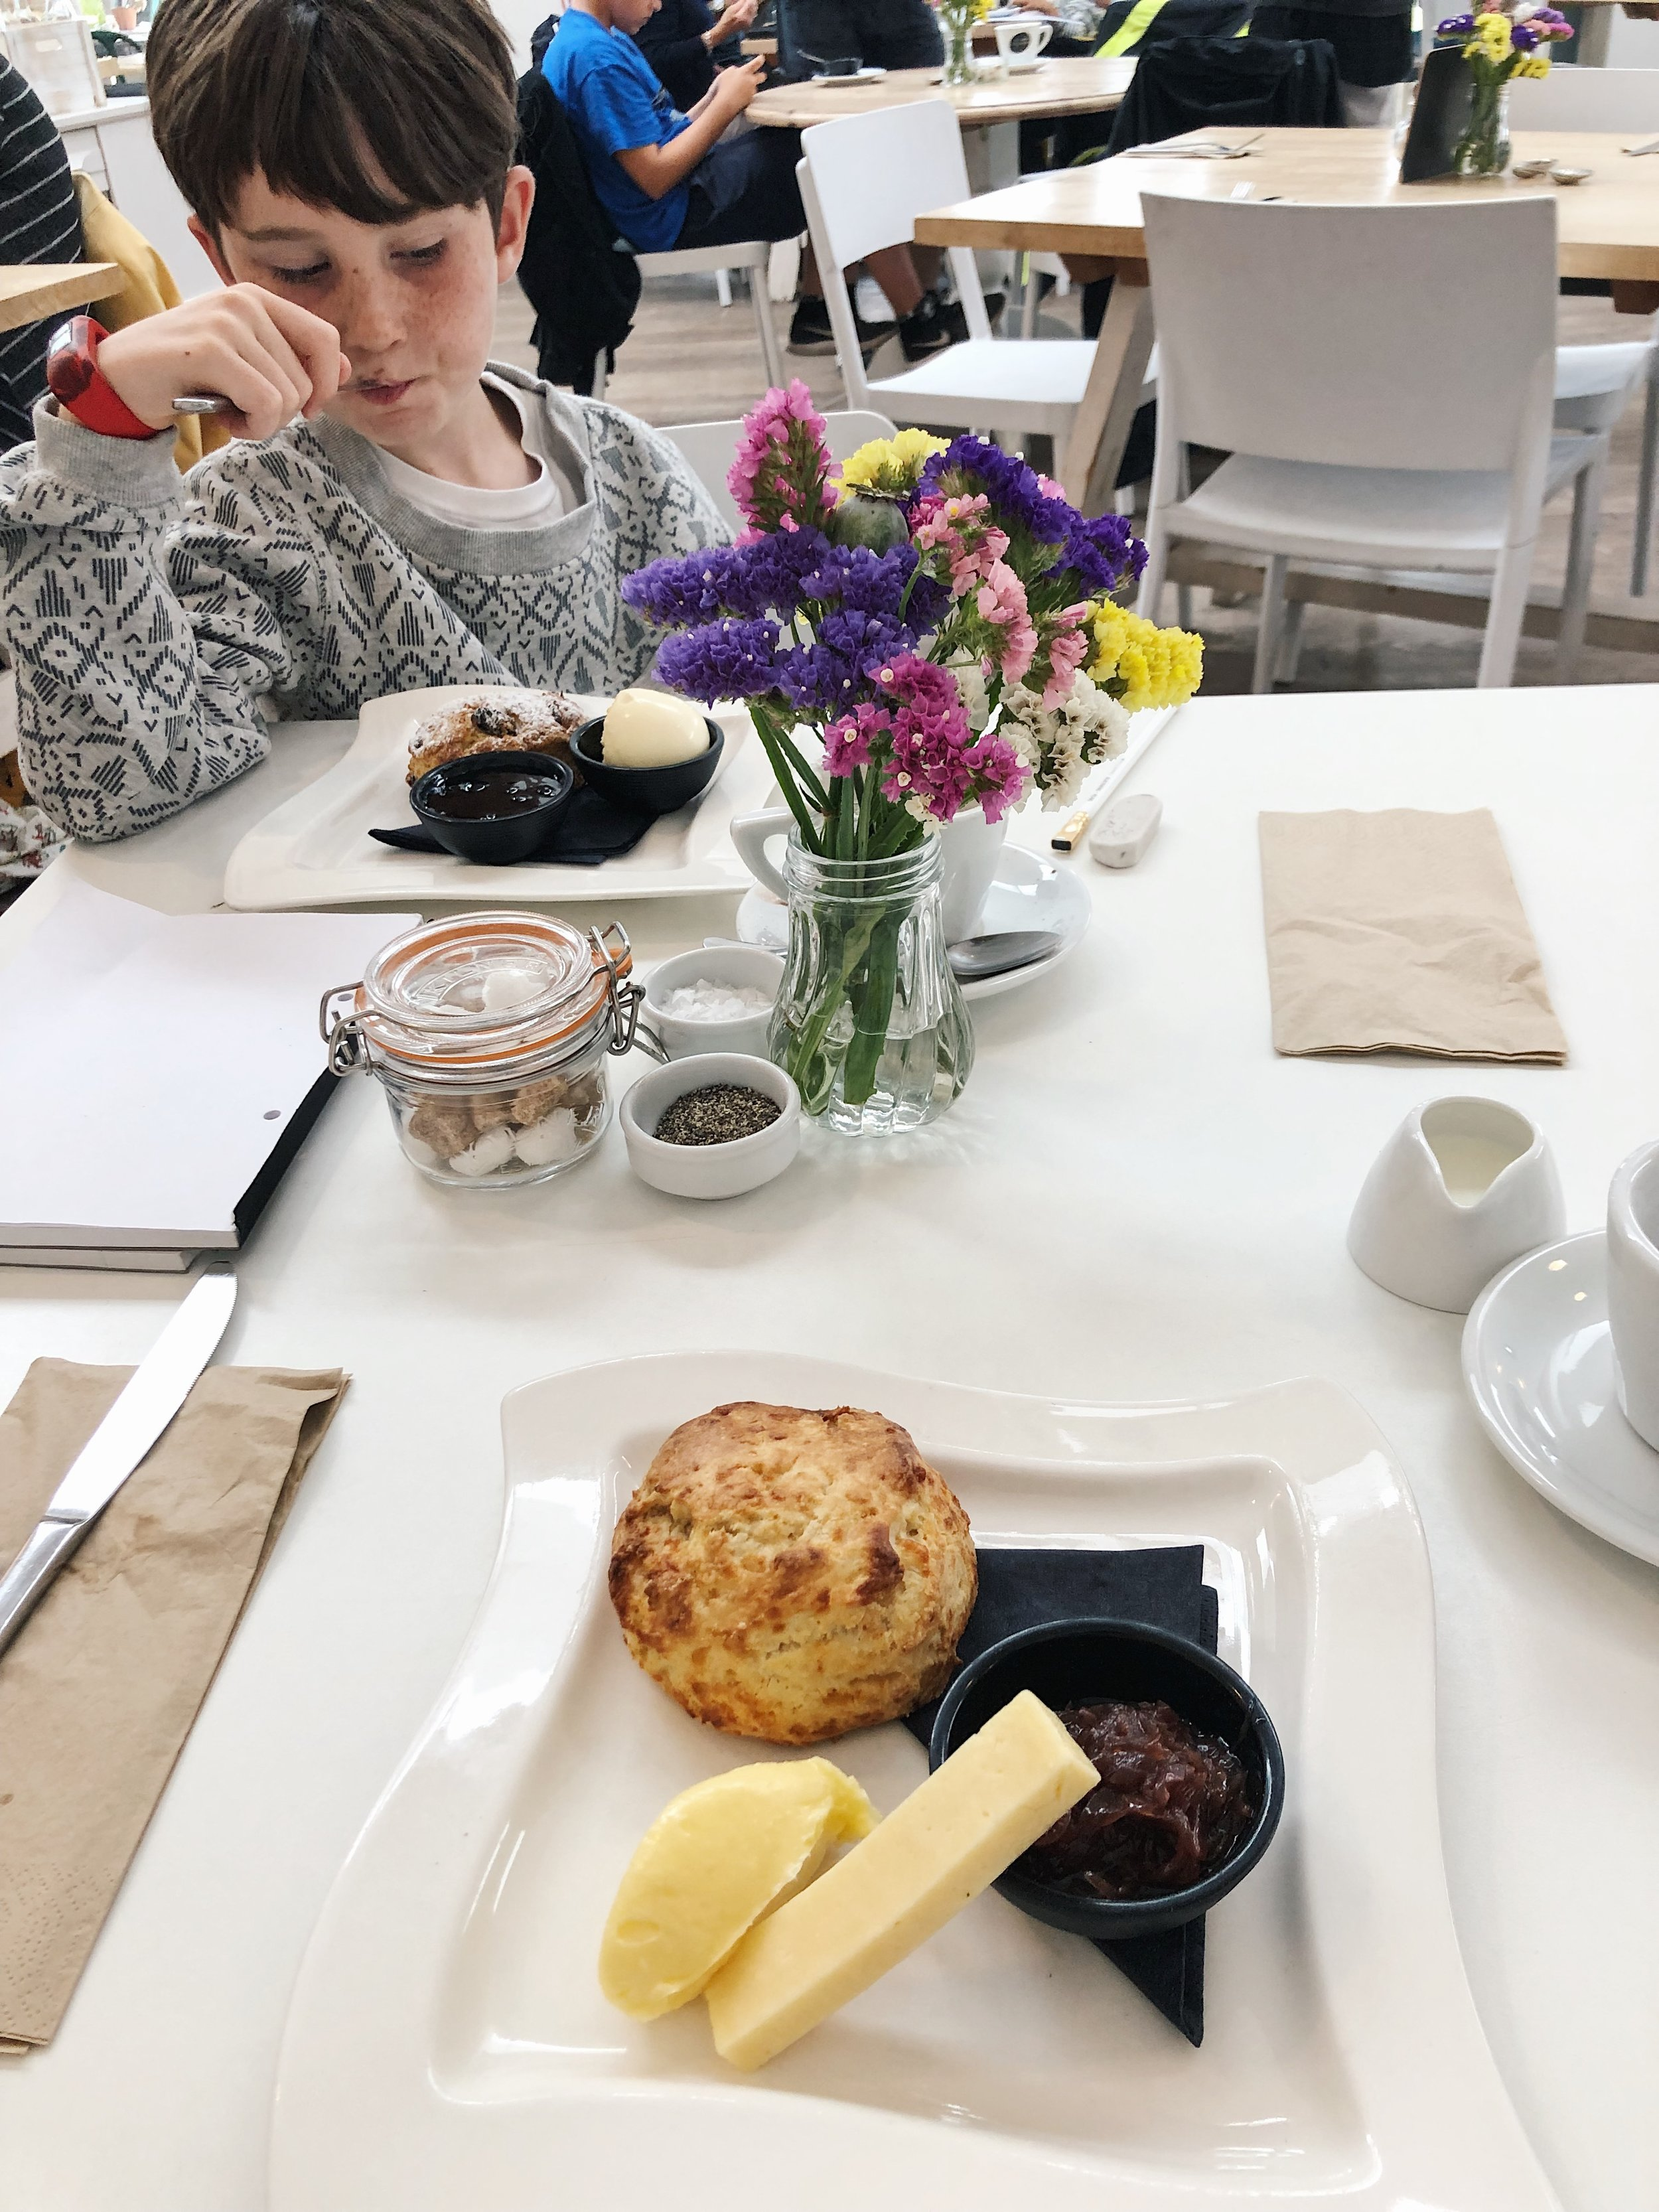 The cheese scone of dreams!